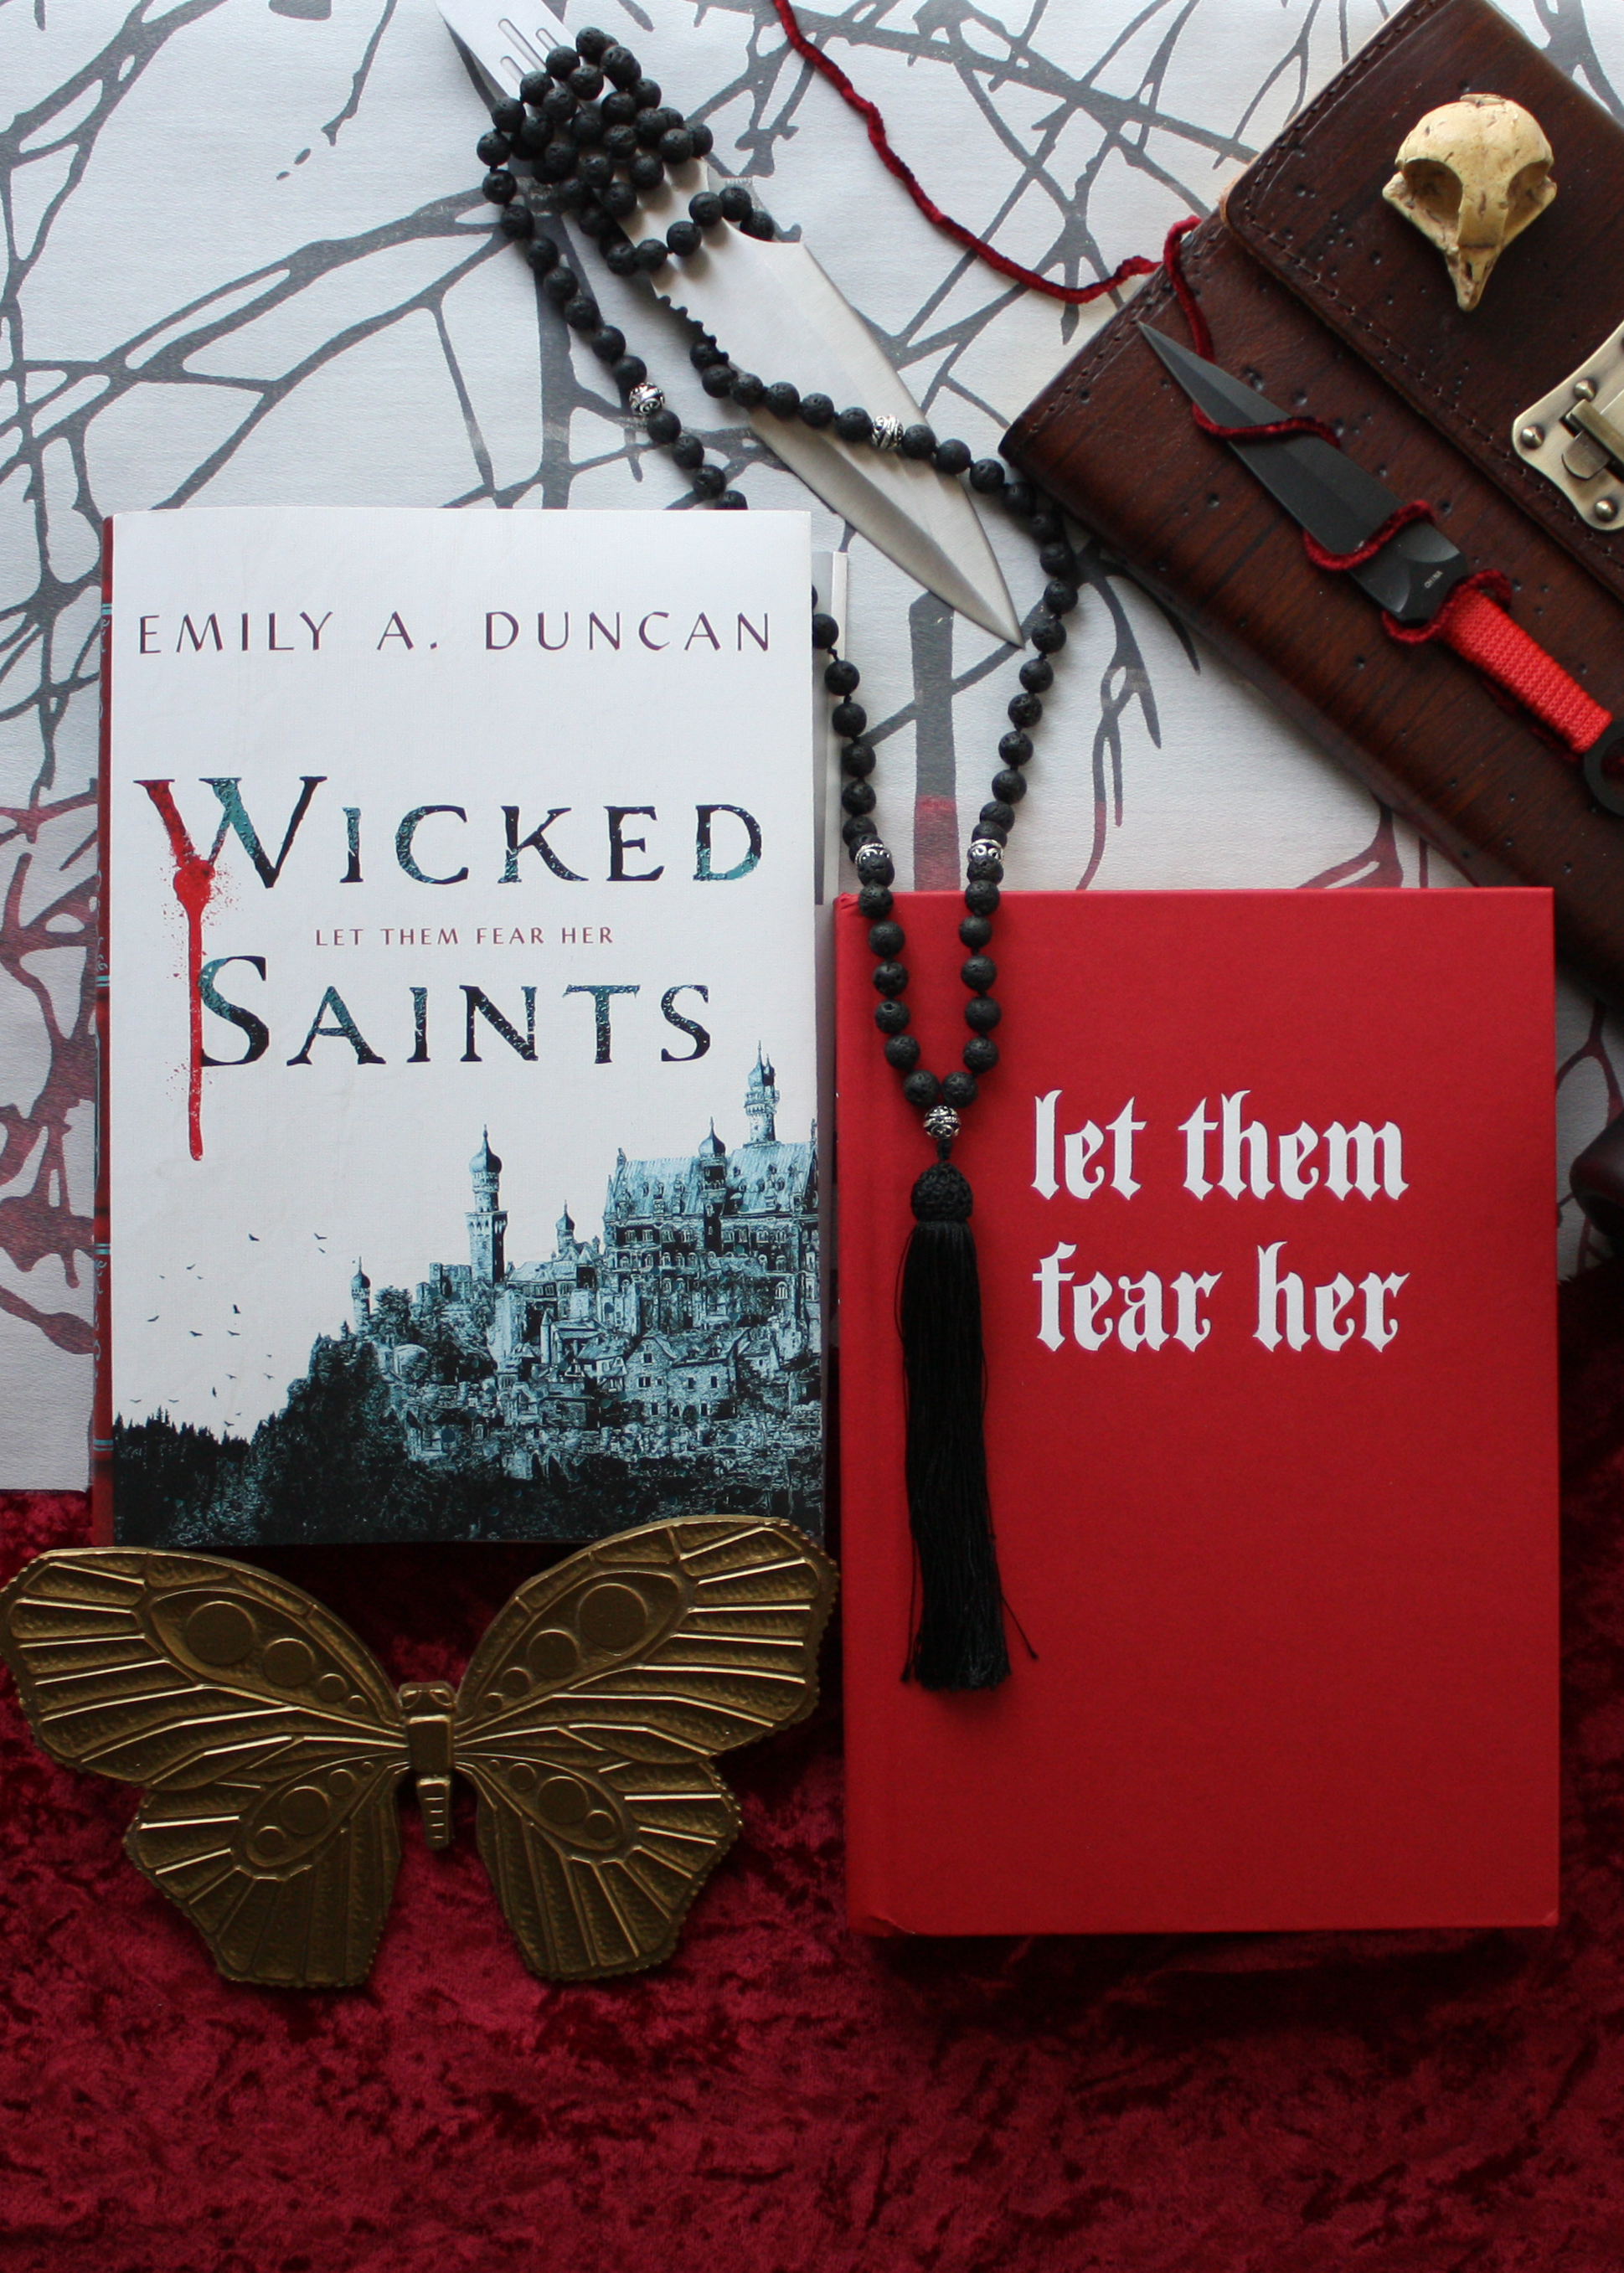 Wicked Saints by Emily A. Duncan [Book Review]